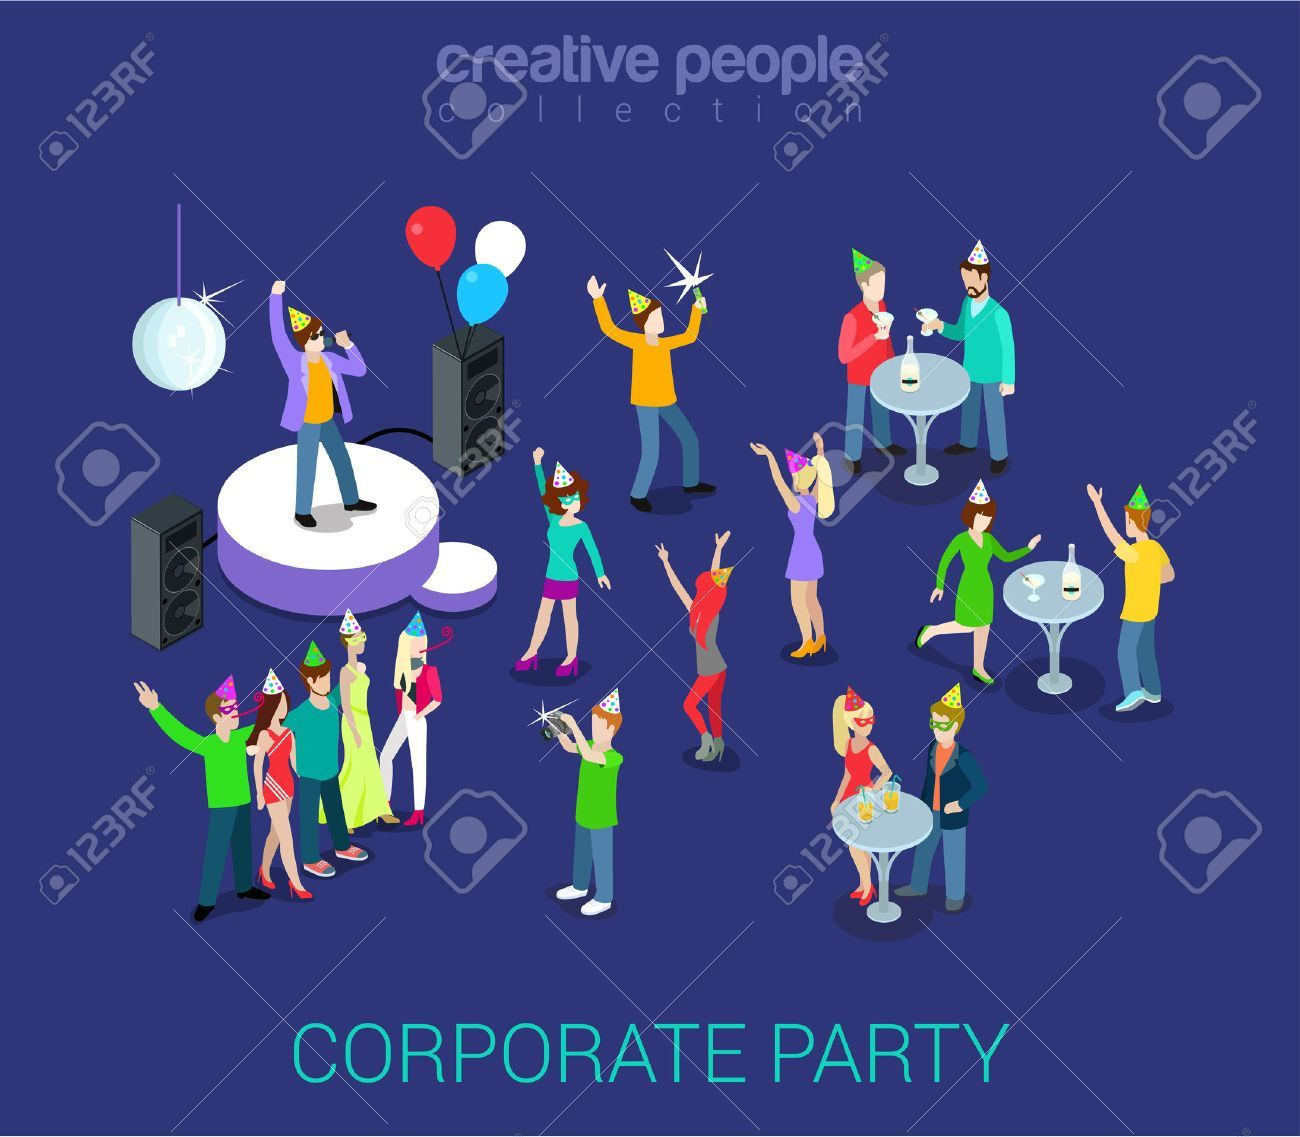 Corporate party holiday event team building flat 3d web